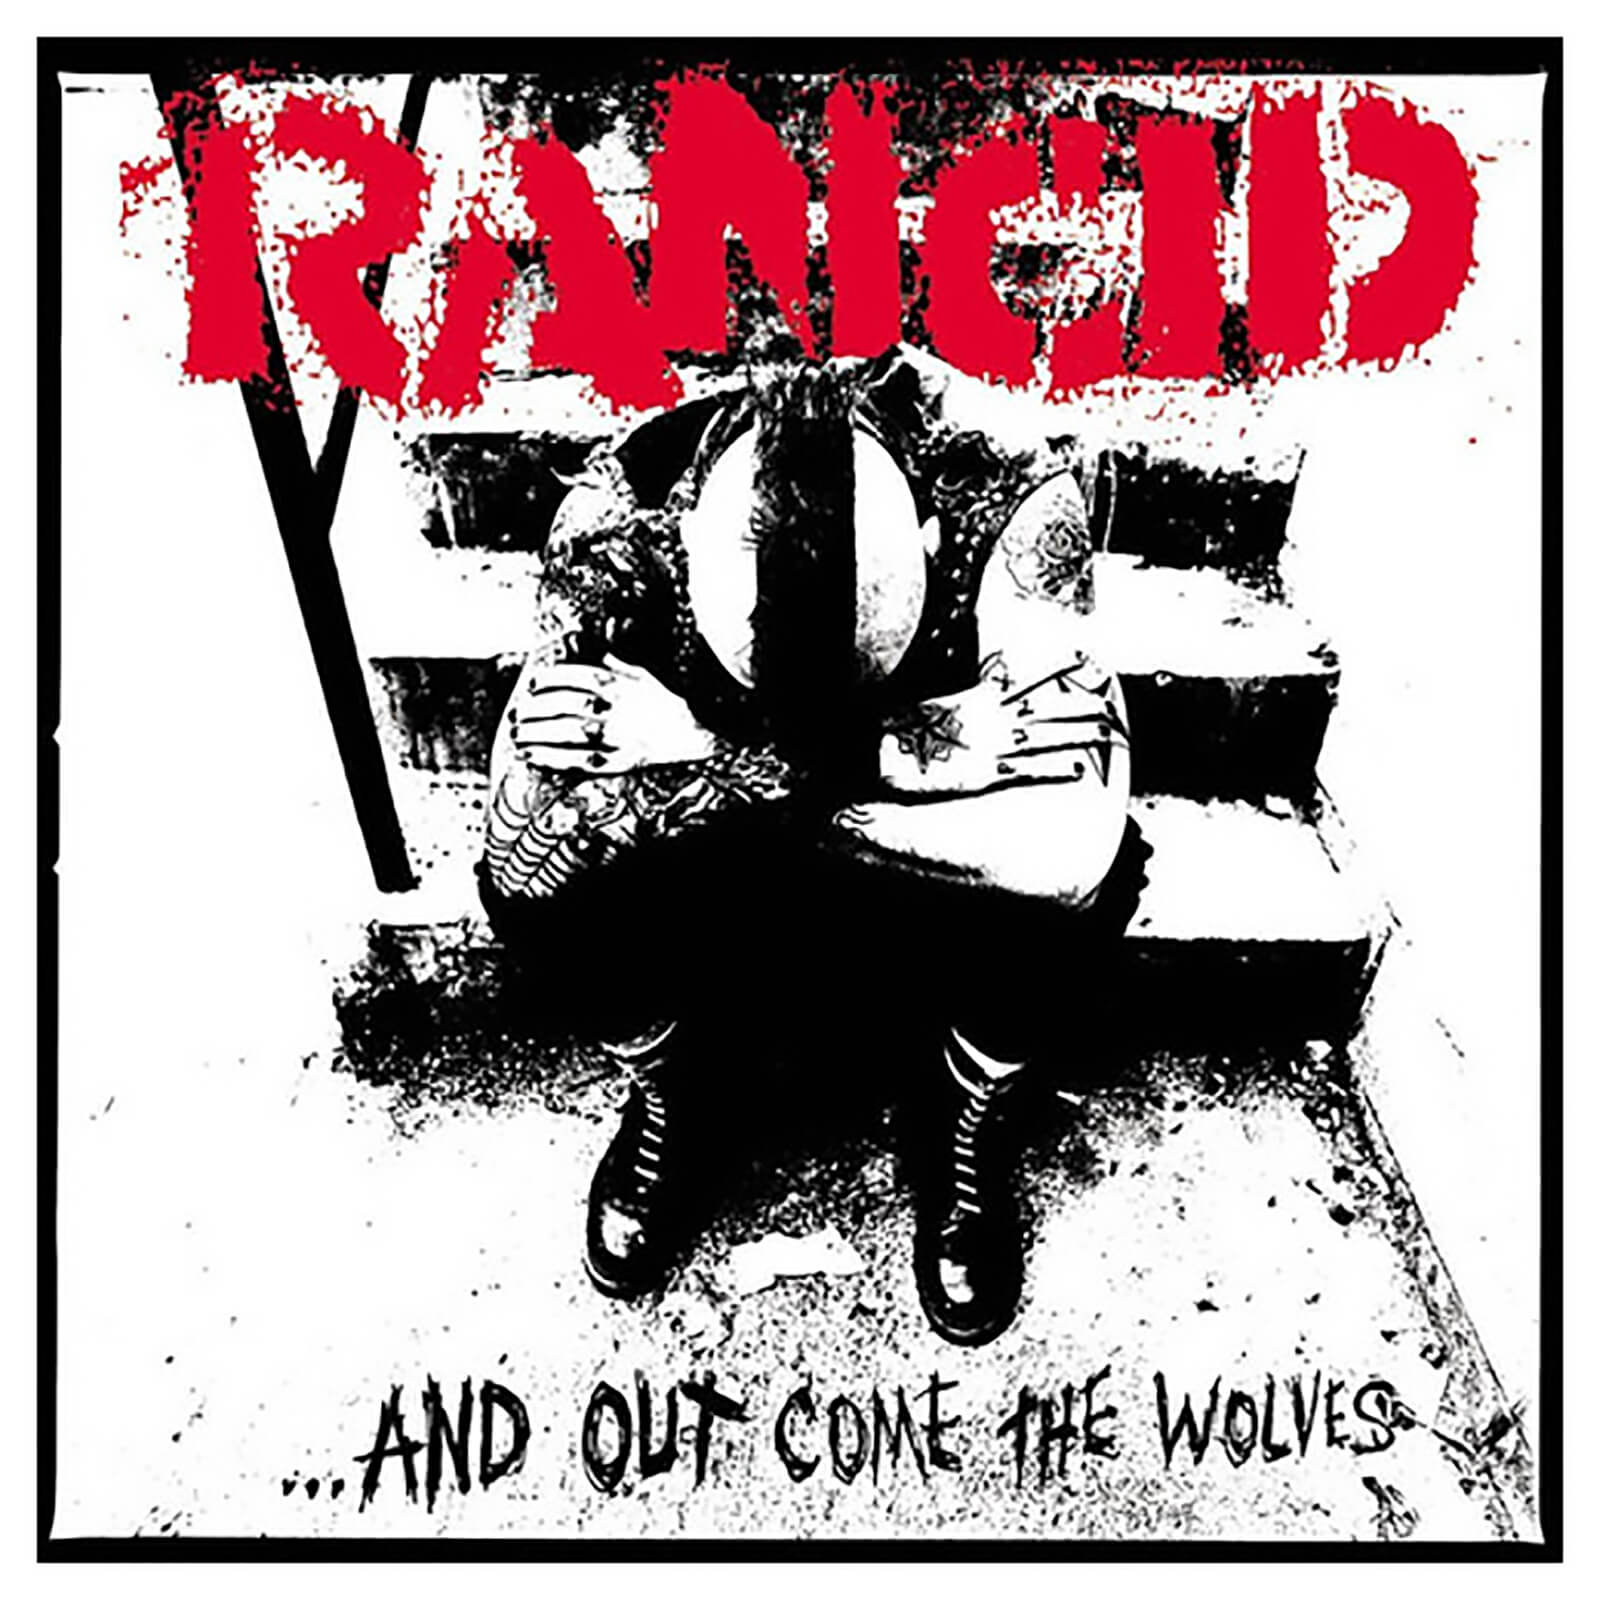 Rancid - & Out Come The Wolves - Vinyl